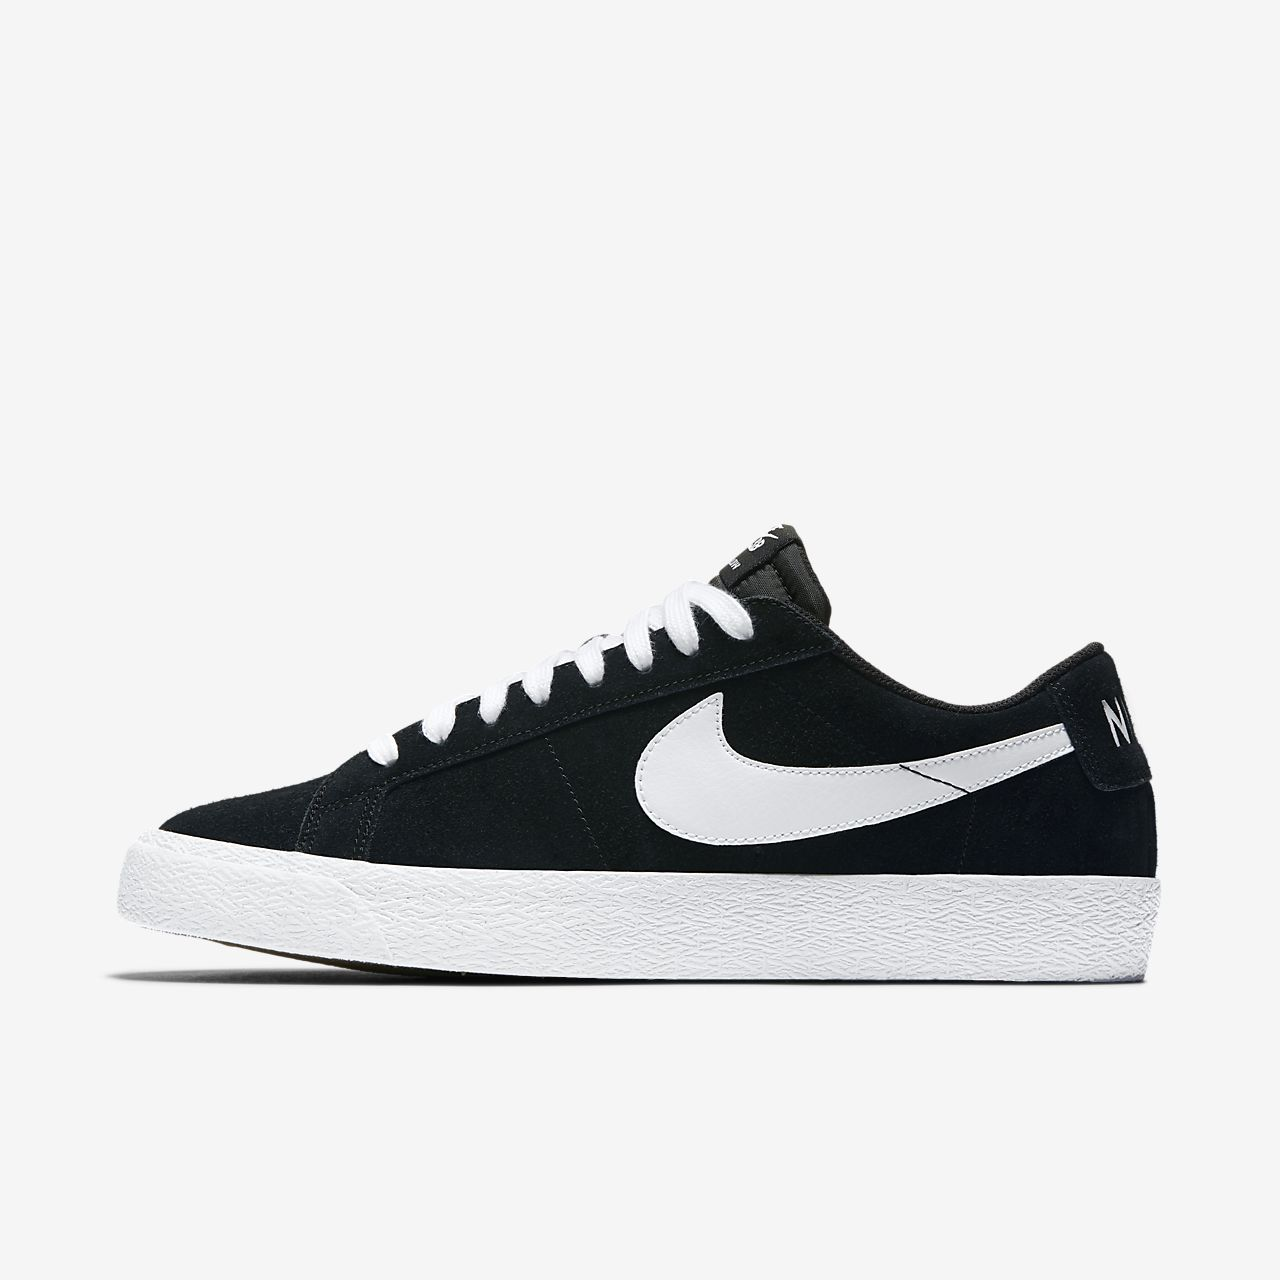 Nike - Blazer Low  Mens Skate Shoes - 864347-019  Black / White / Gum